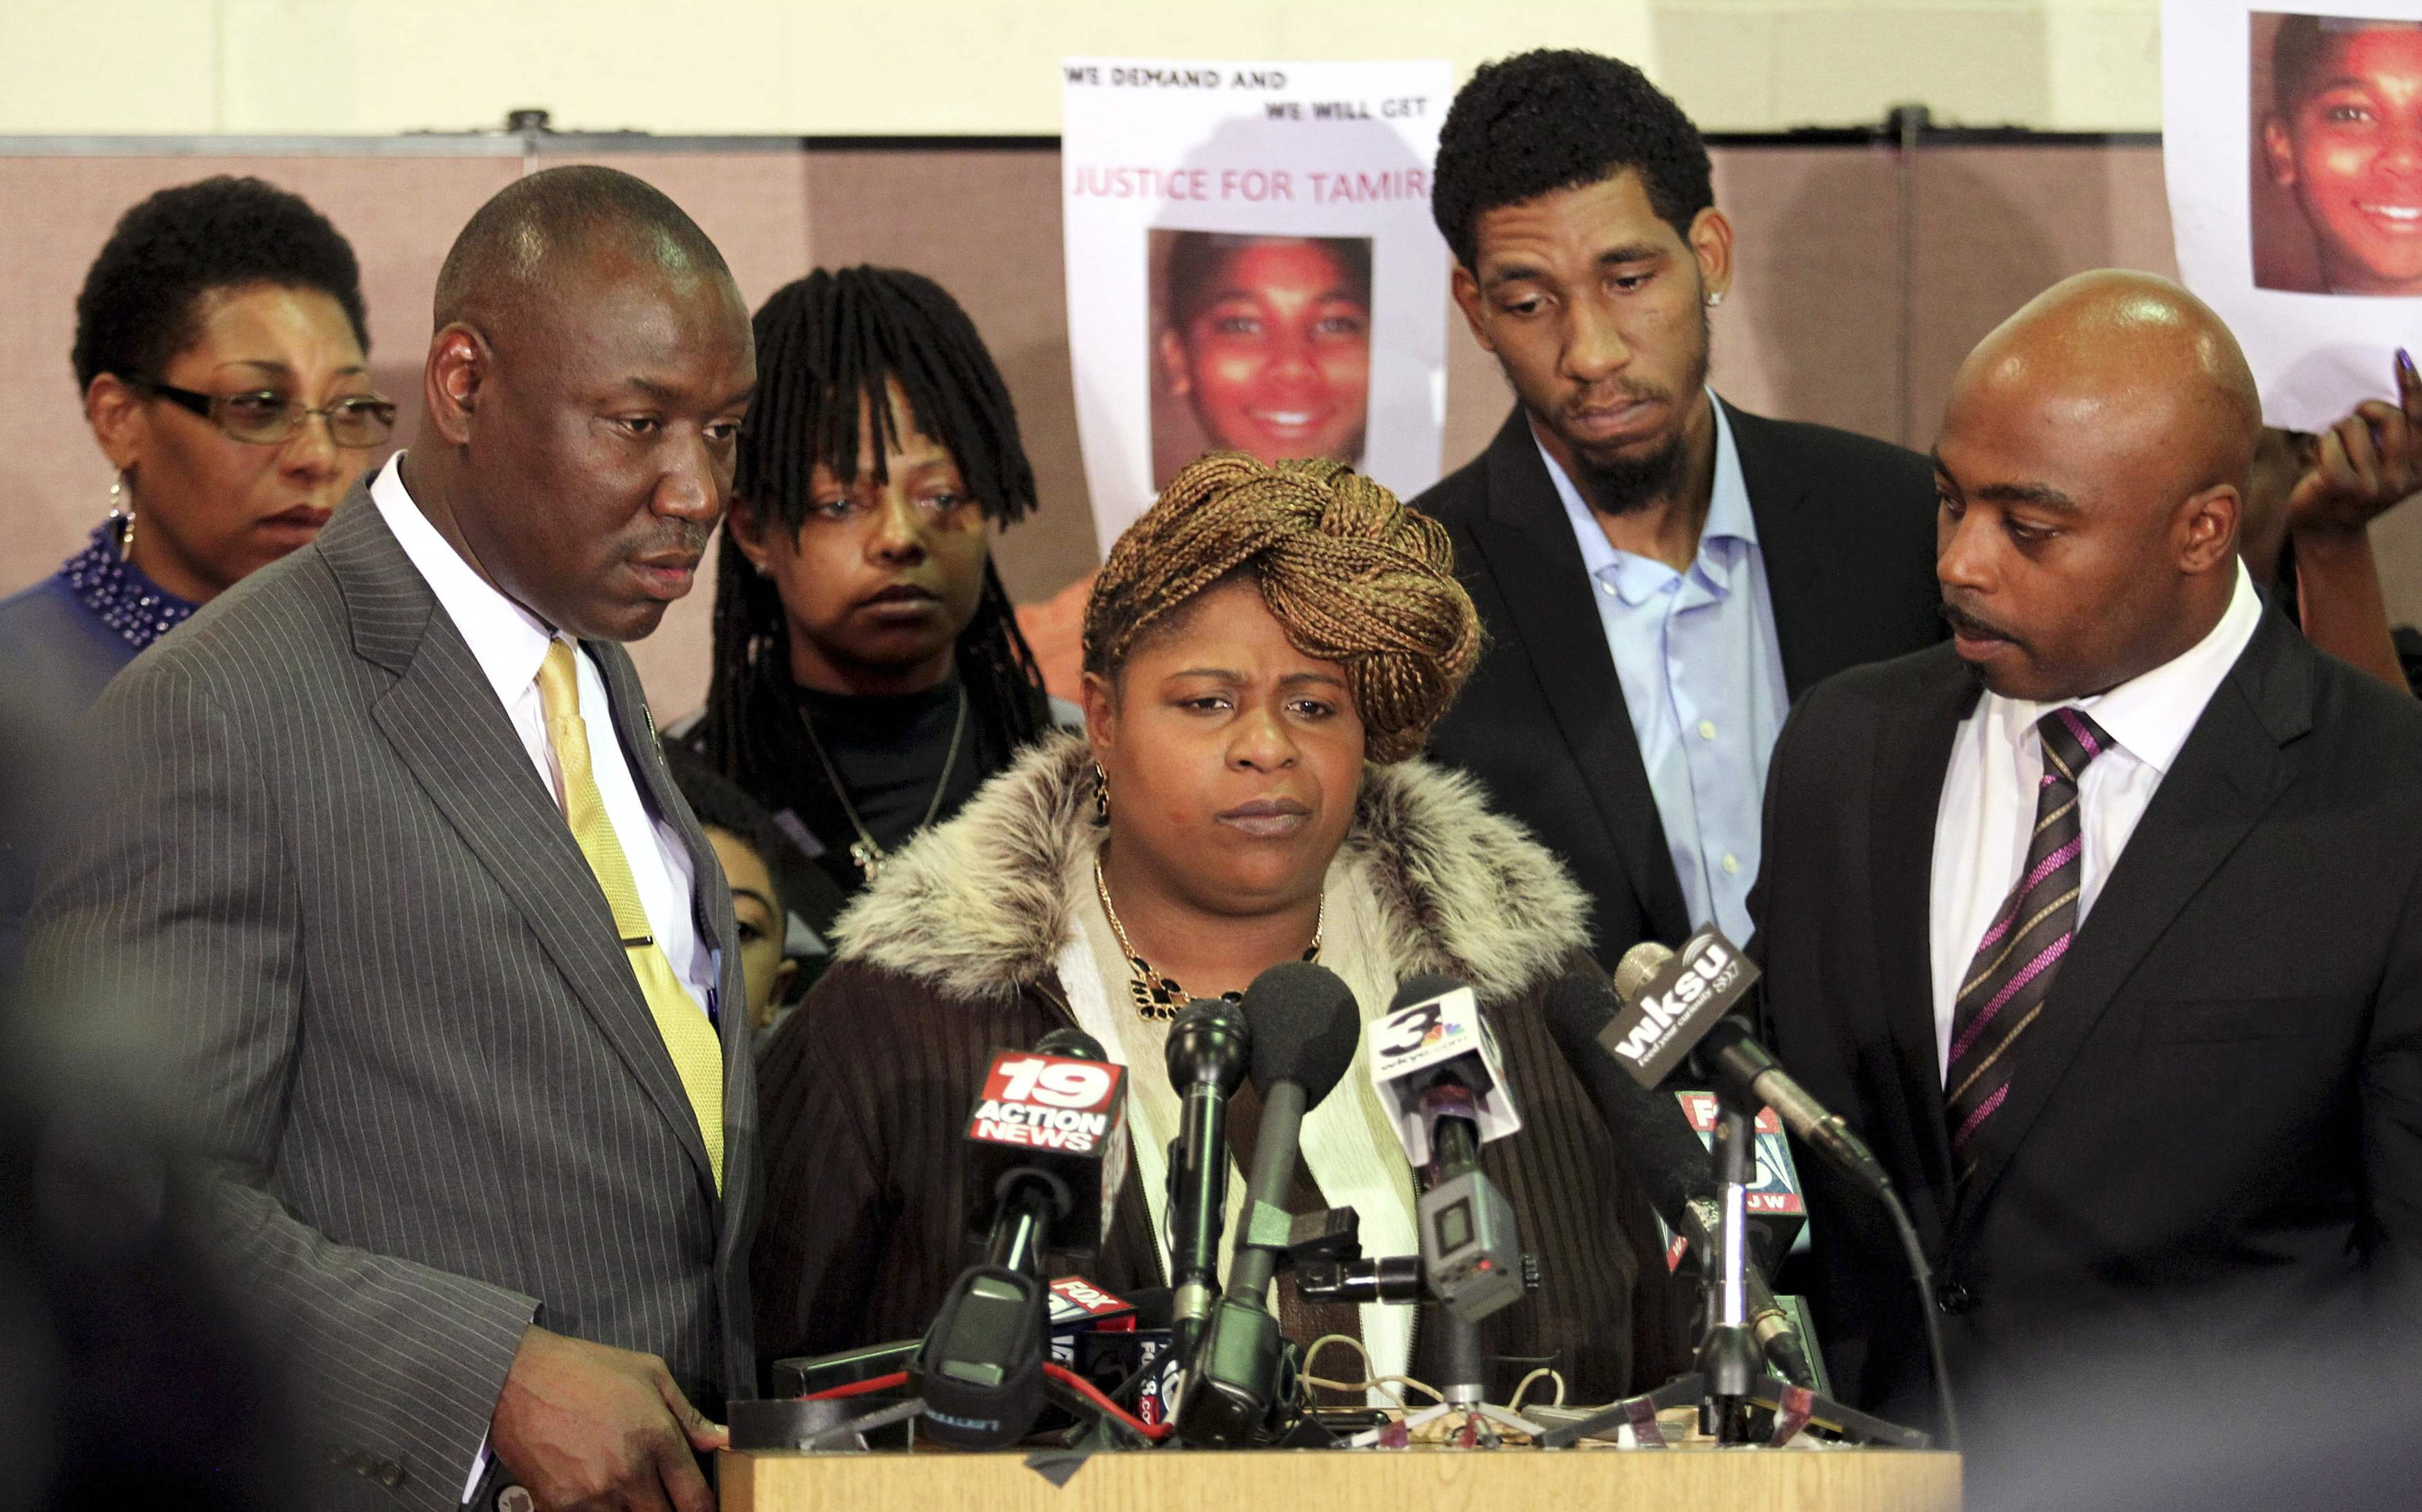 Samaria Rice the mother of Tamir Rice, the 12-year old boy who was fatally shot by police speaks during a news conference at the Olivet Baptist Church in Cleveland on Dec. 8, 2014.